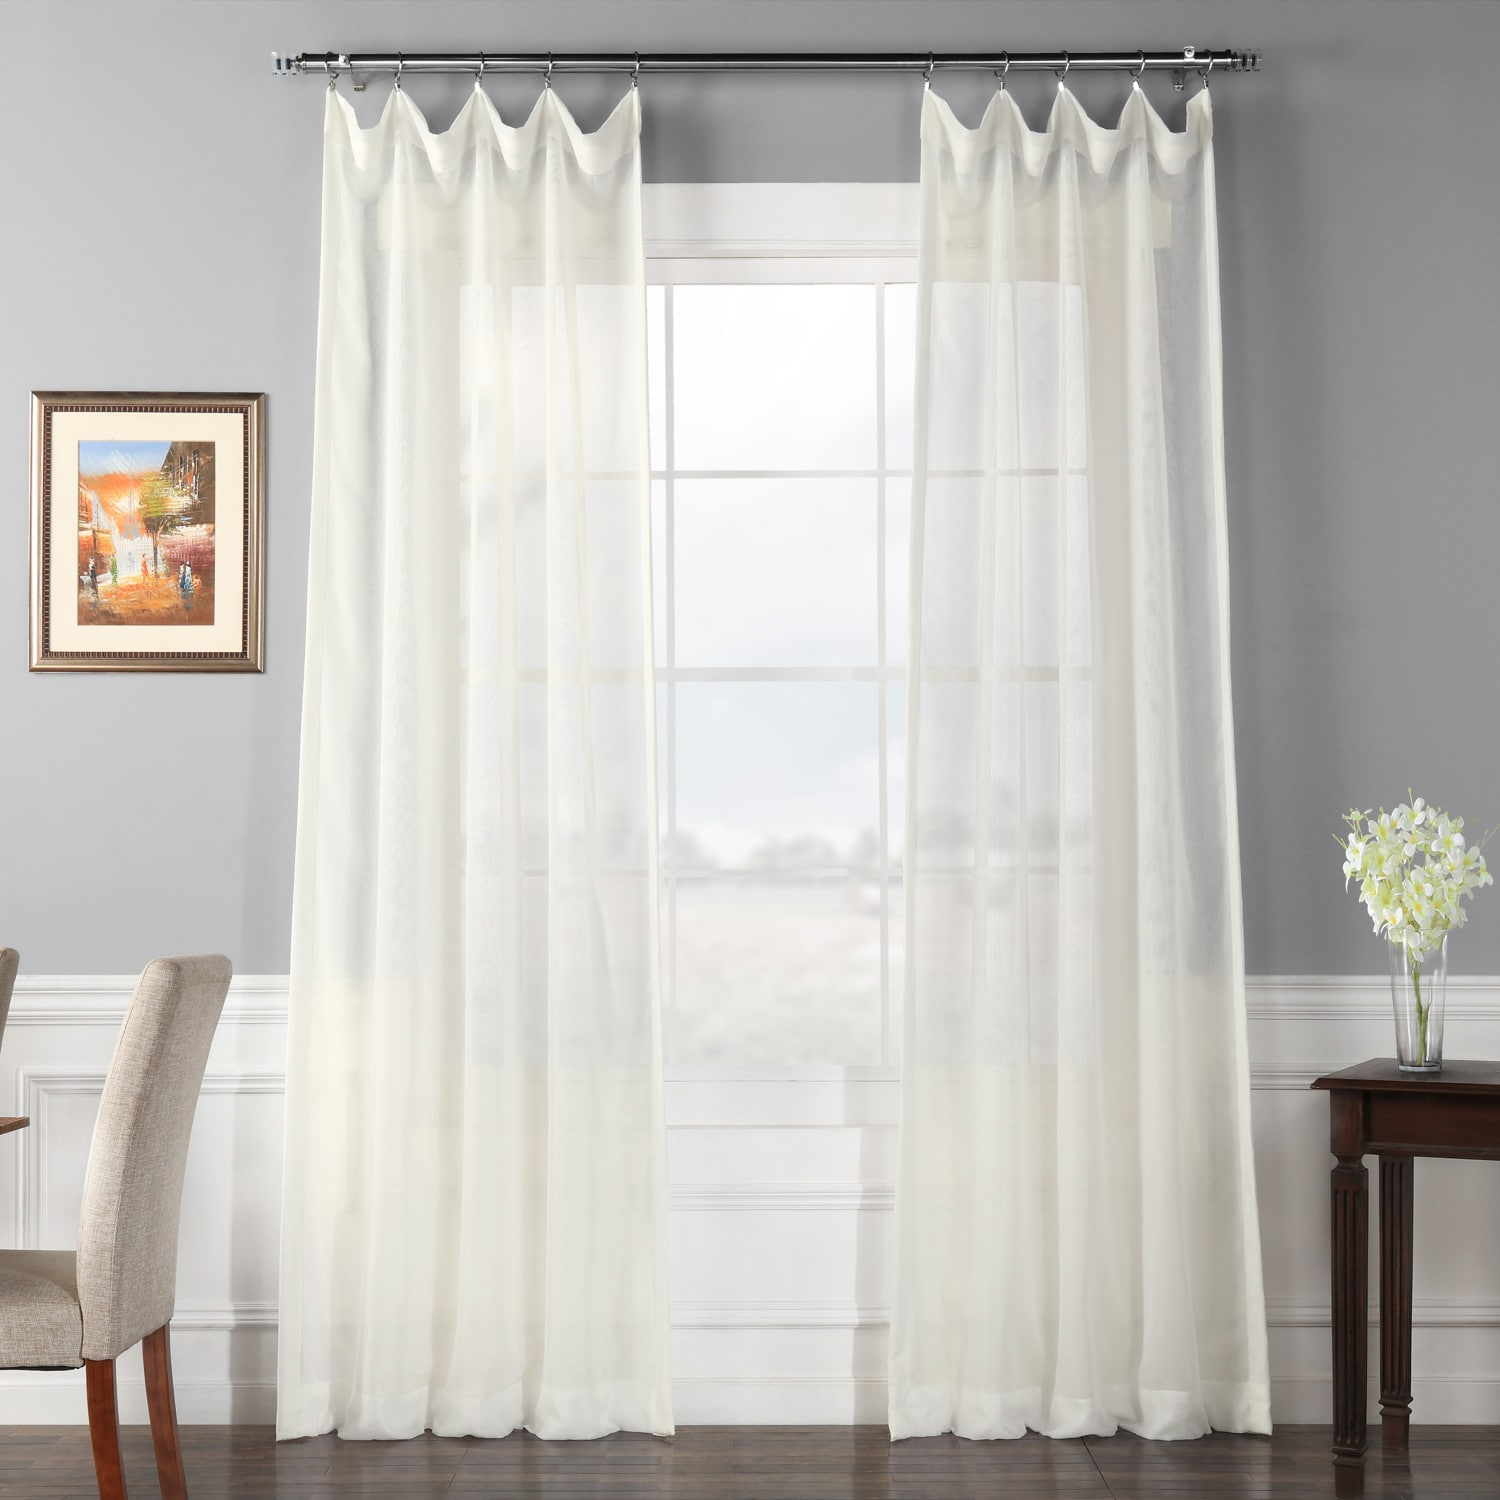 signature double layered off white sheer curtain - White Sheer Curtains